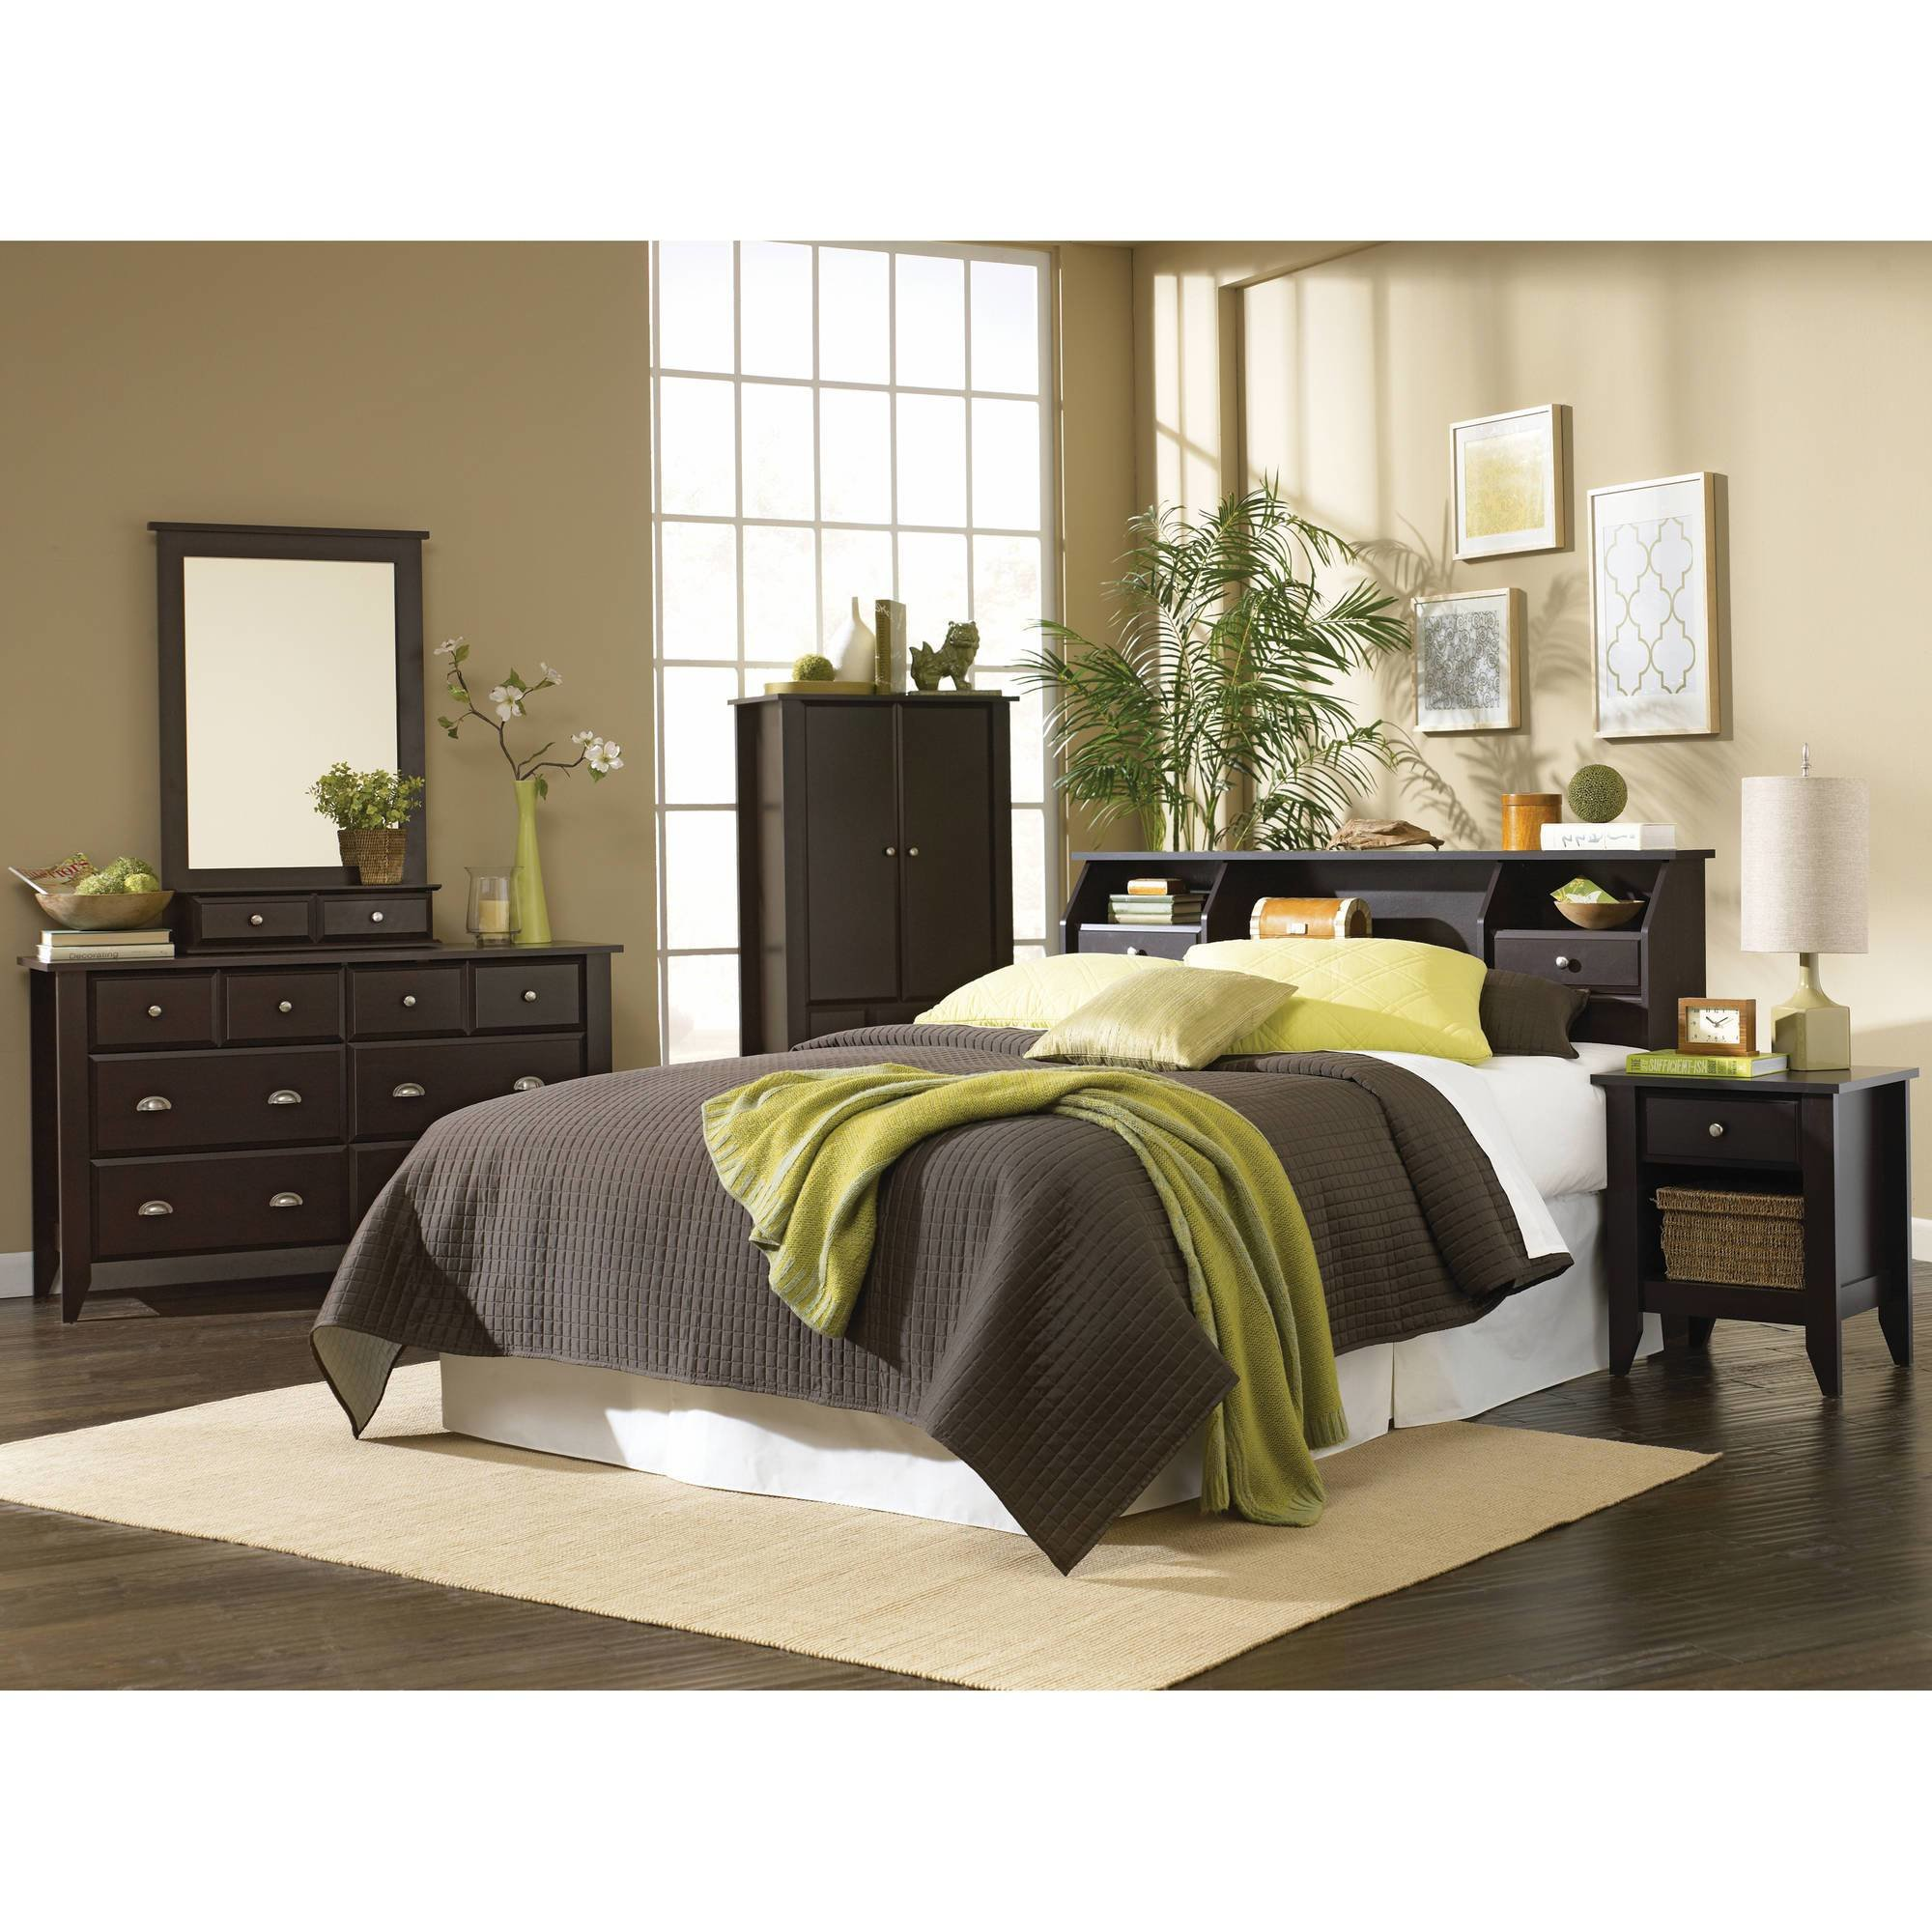 Best Headboard Full Queen Size Bed Bedroom Furniture Bookcase Storage Drawers Shelf 692621242527 Ebay With Pictures